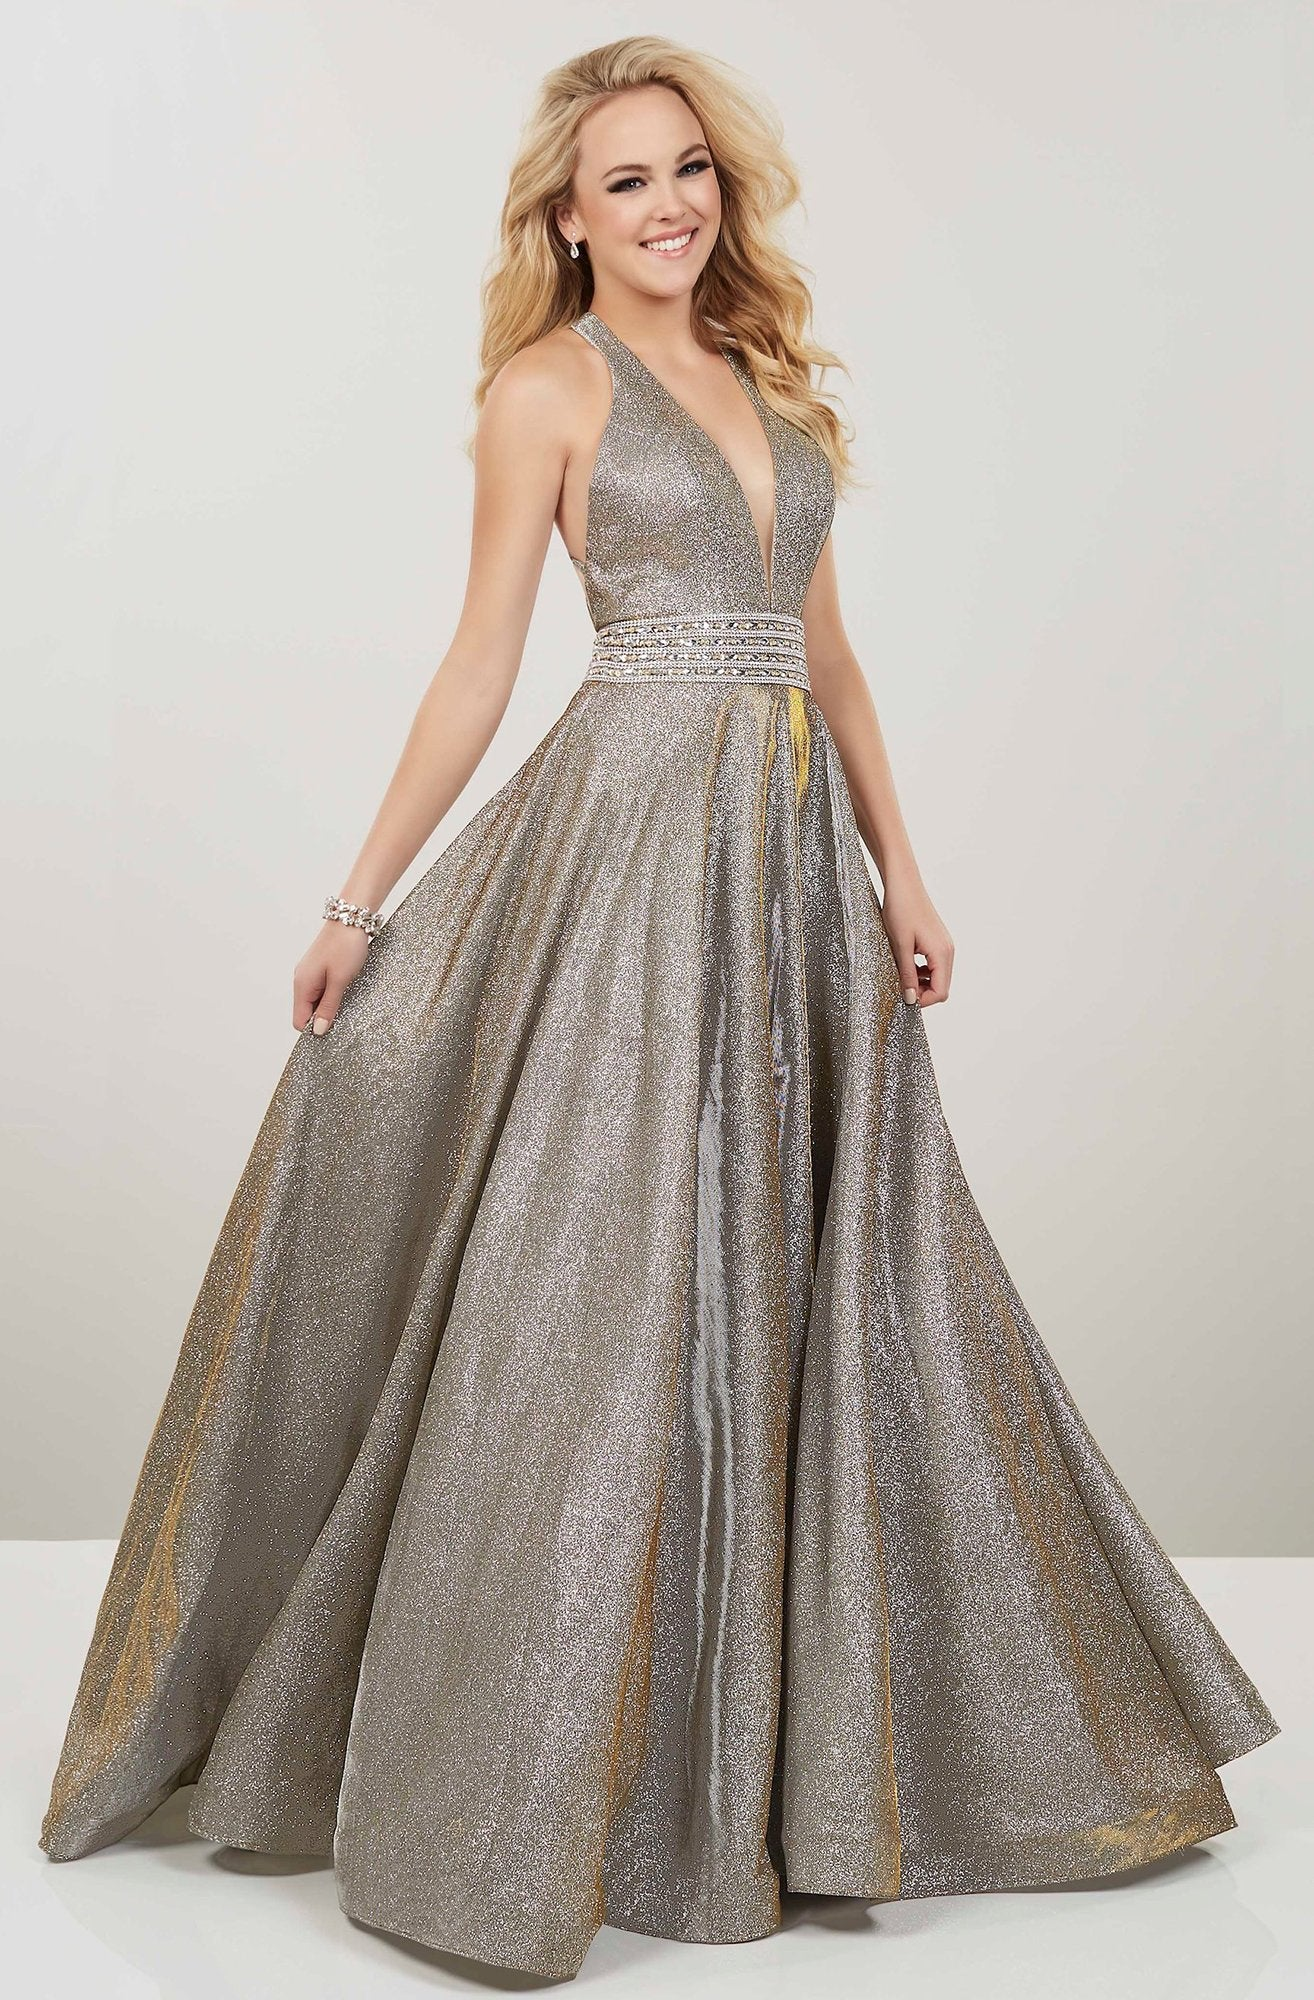 Panoply - 14926 Plunging V-Neck Embellished Ballgown In Gold